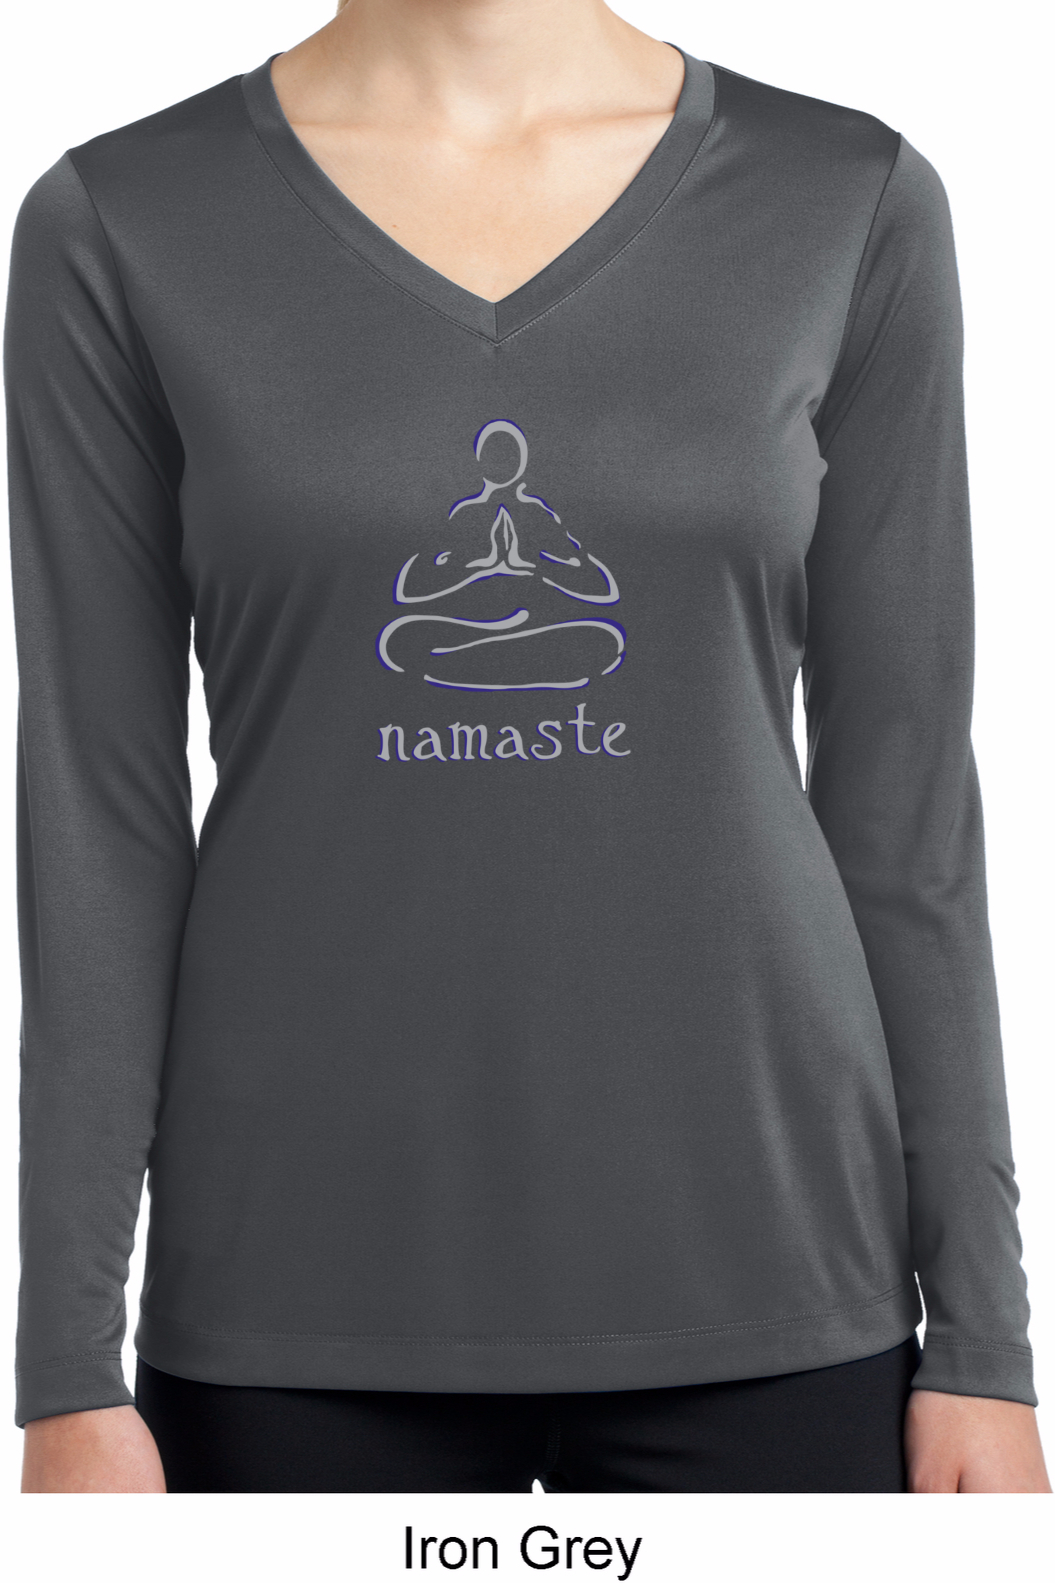 Ladies Shirt Namaste Lotus Pose Dry Wicking Long Sleeve